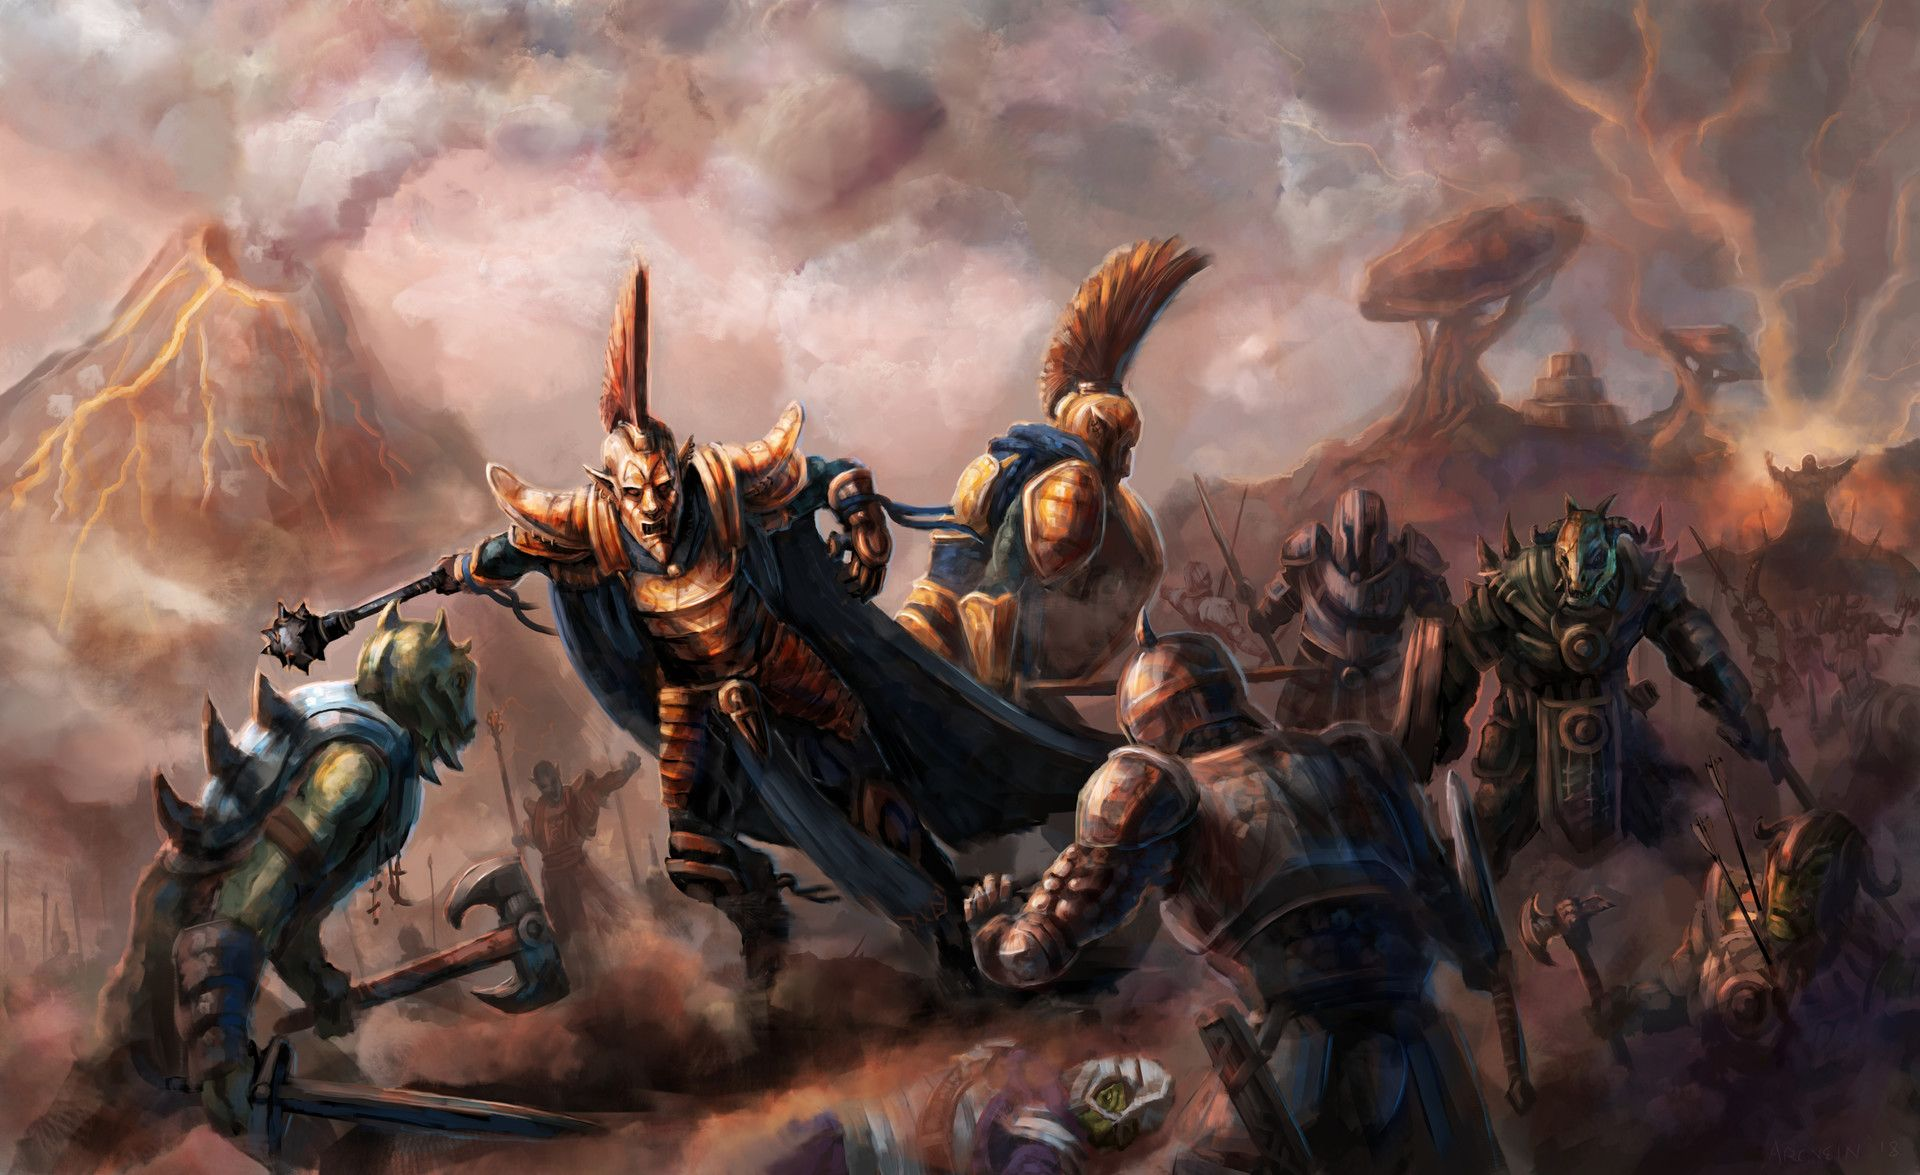 ArtStation - Ordinator Battle (Beyond Skyrim: Morrowind